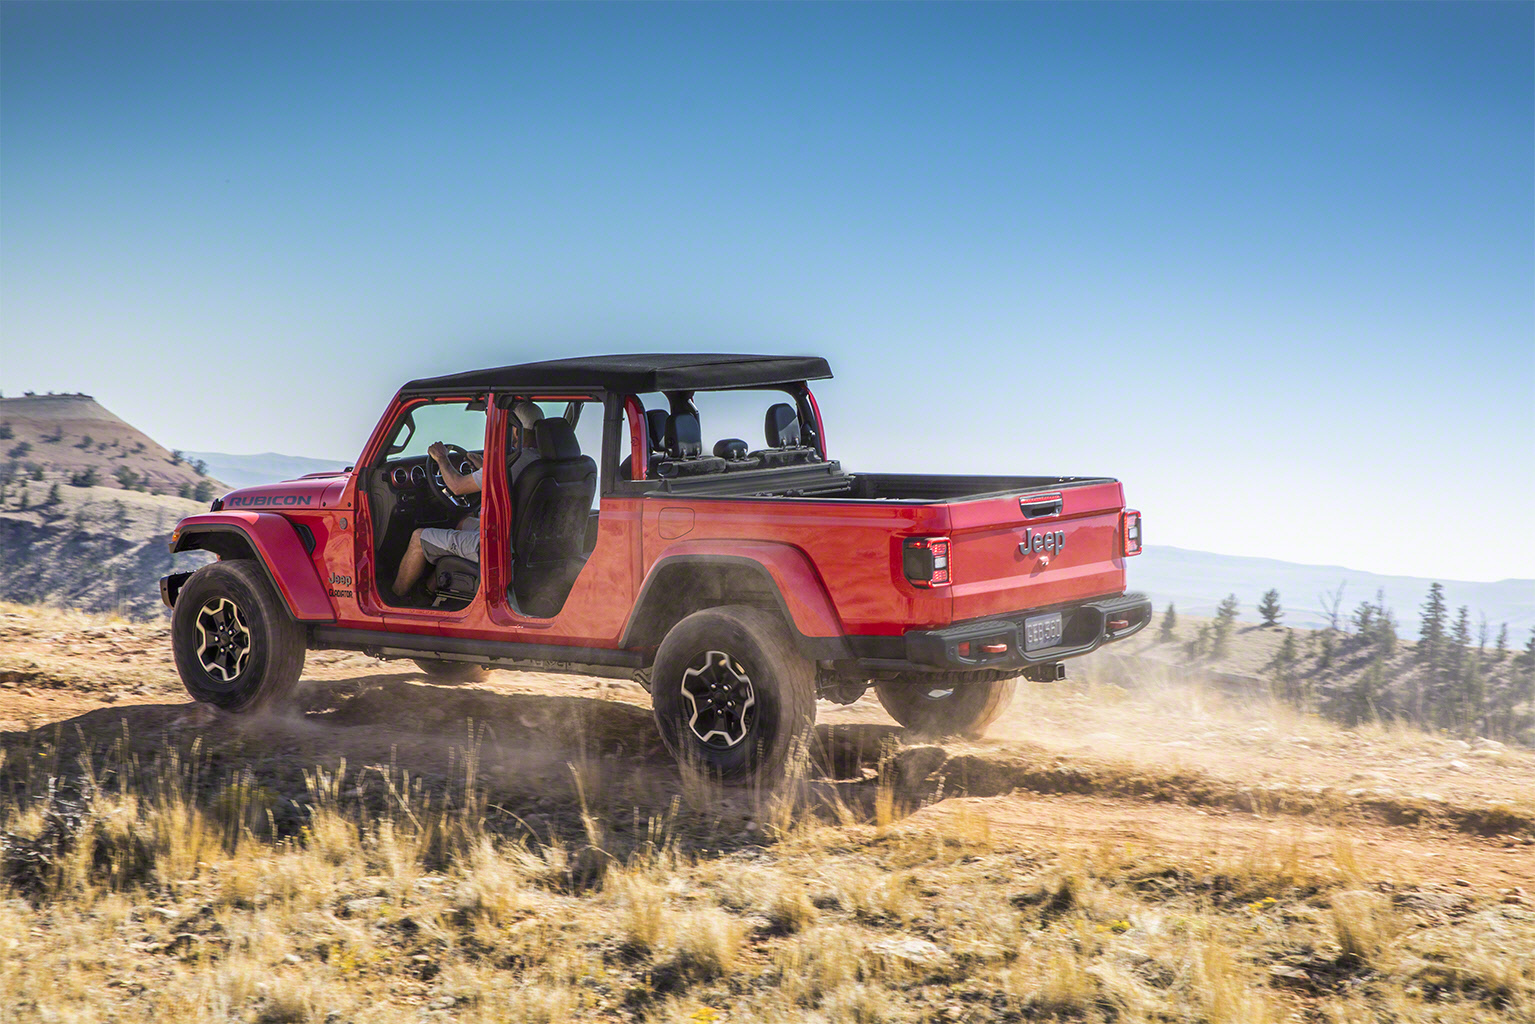 2020 Jeep Gladiator off road doors off